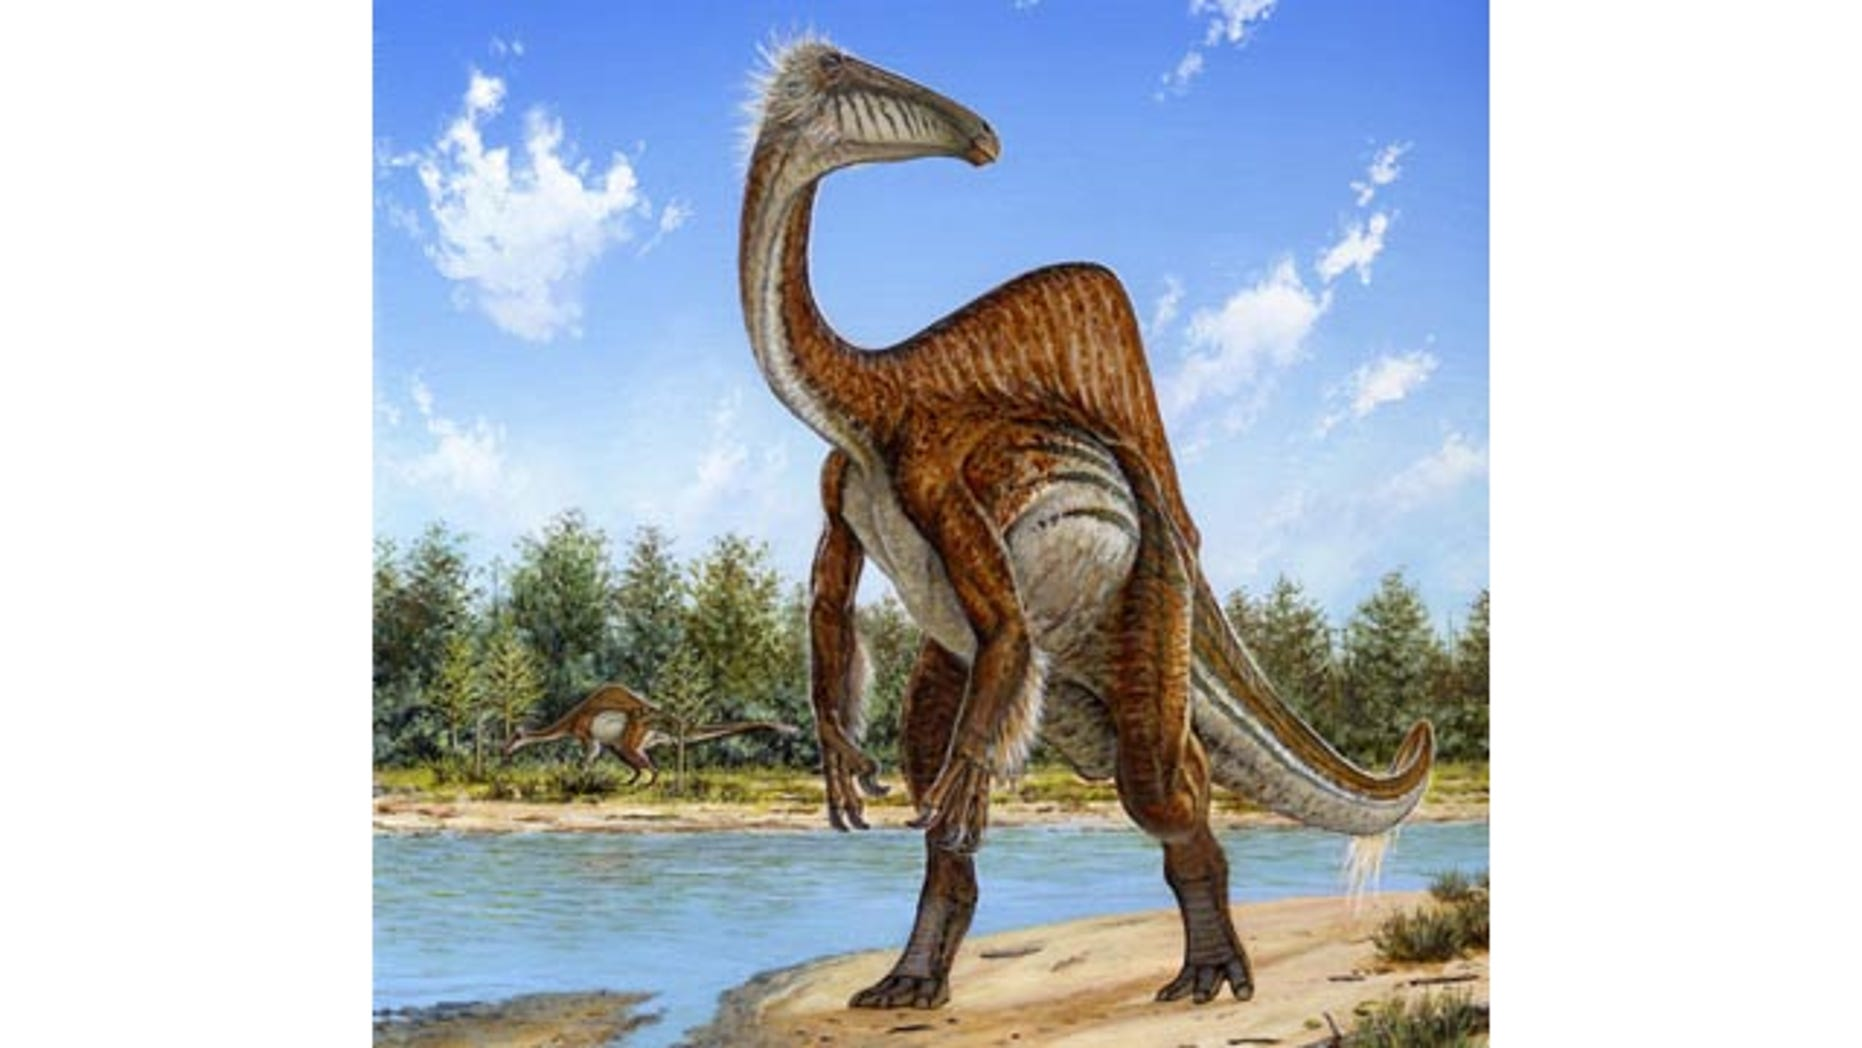 This undated handout image provided by Michael Skrepnick, Dinosaurs in Art, Nature Publishing Group, shows a Deinocheirus. (AP Photo/Michael Skrepnick, Dinosaurs in Art, Nature Publishing Group)